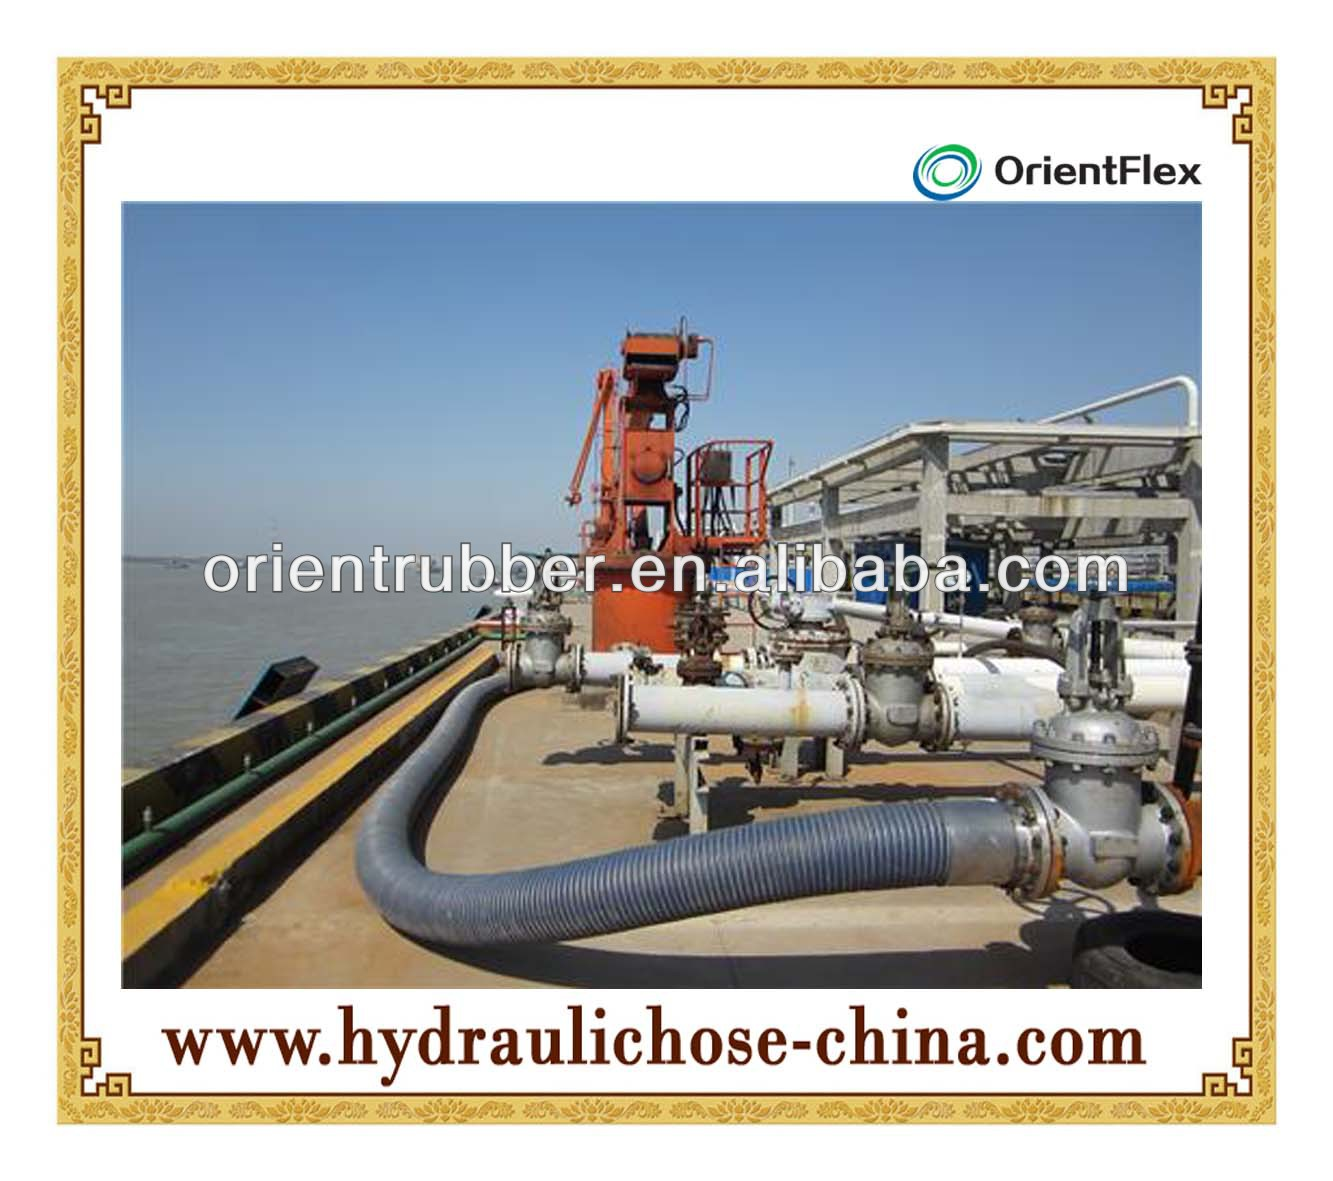 Petroleum/Oil Composite hose